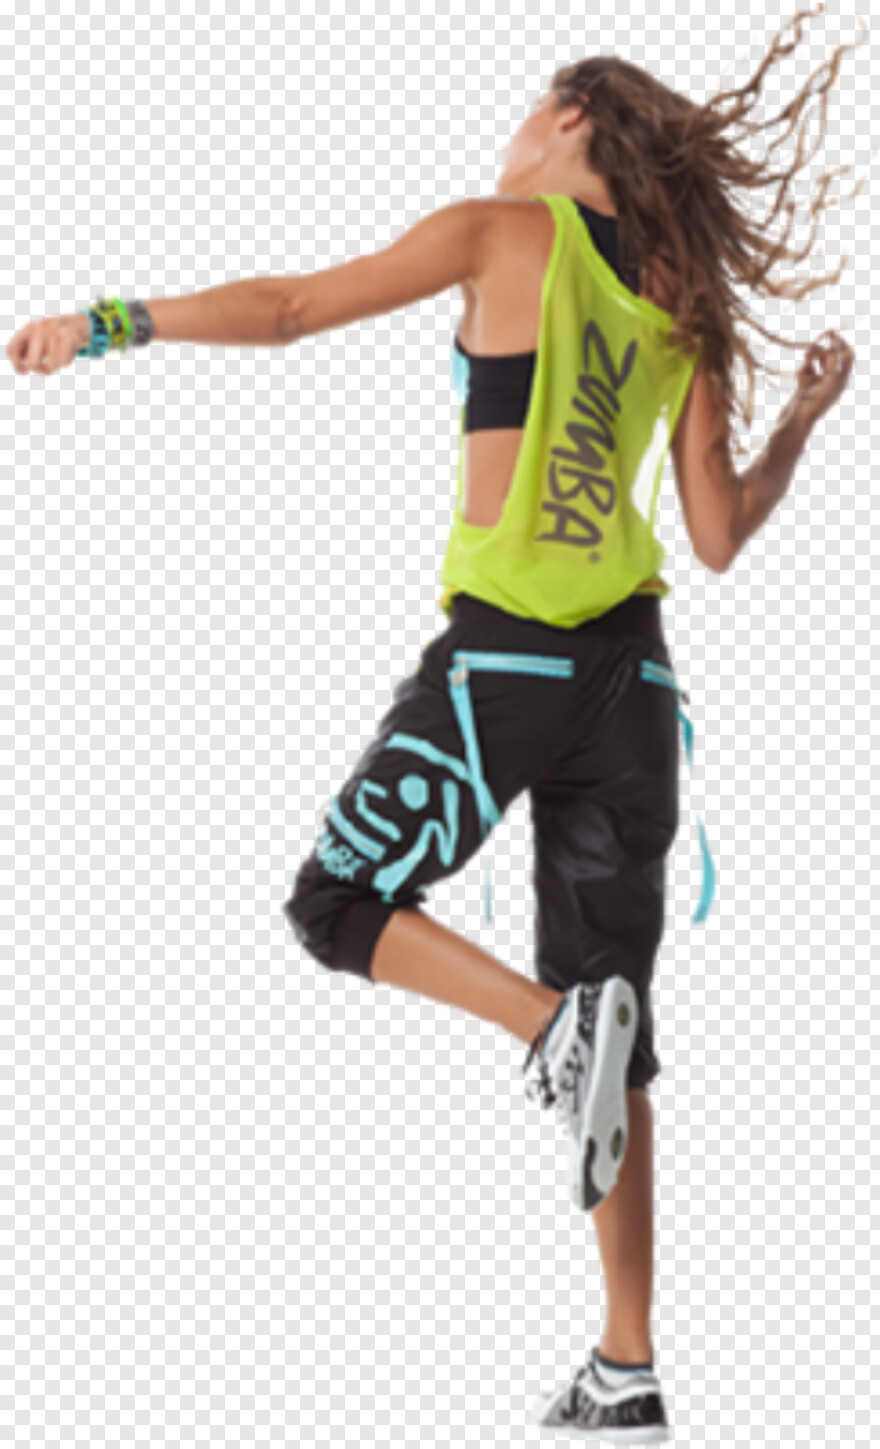 Dancing Girl - Zumba Fitness Model Png, HD Png Download